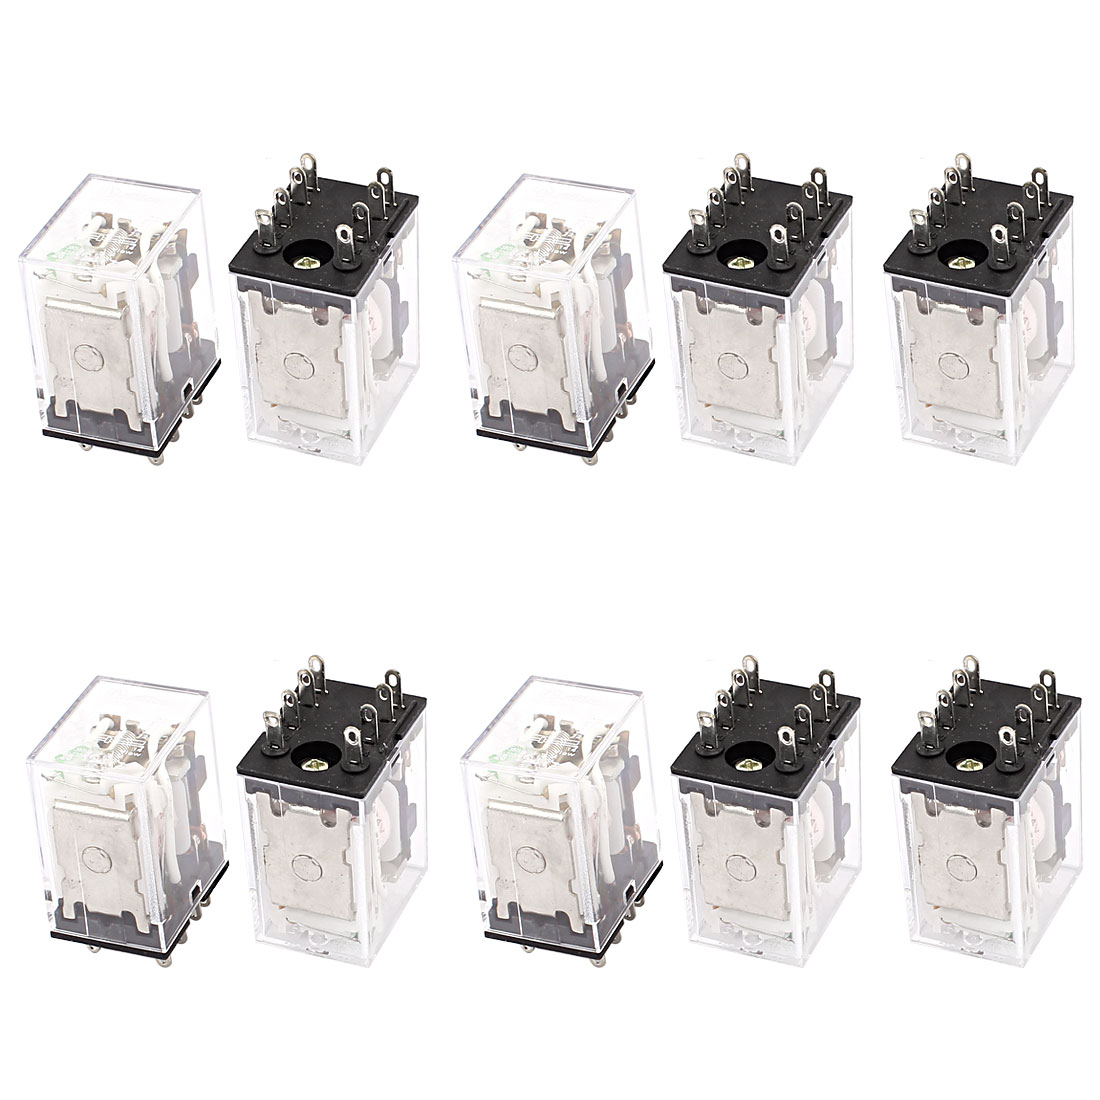 HH52PL DC 24V Coil DPDT 8-Pin Power Electromagnetic Relay 10PCS